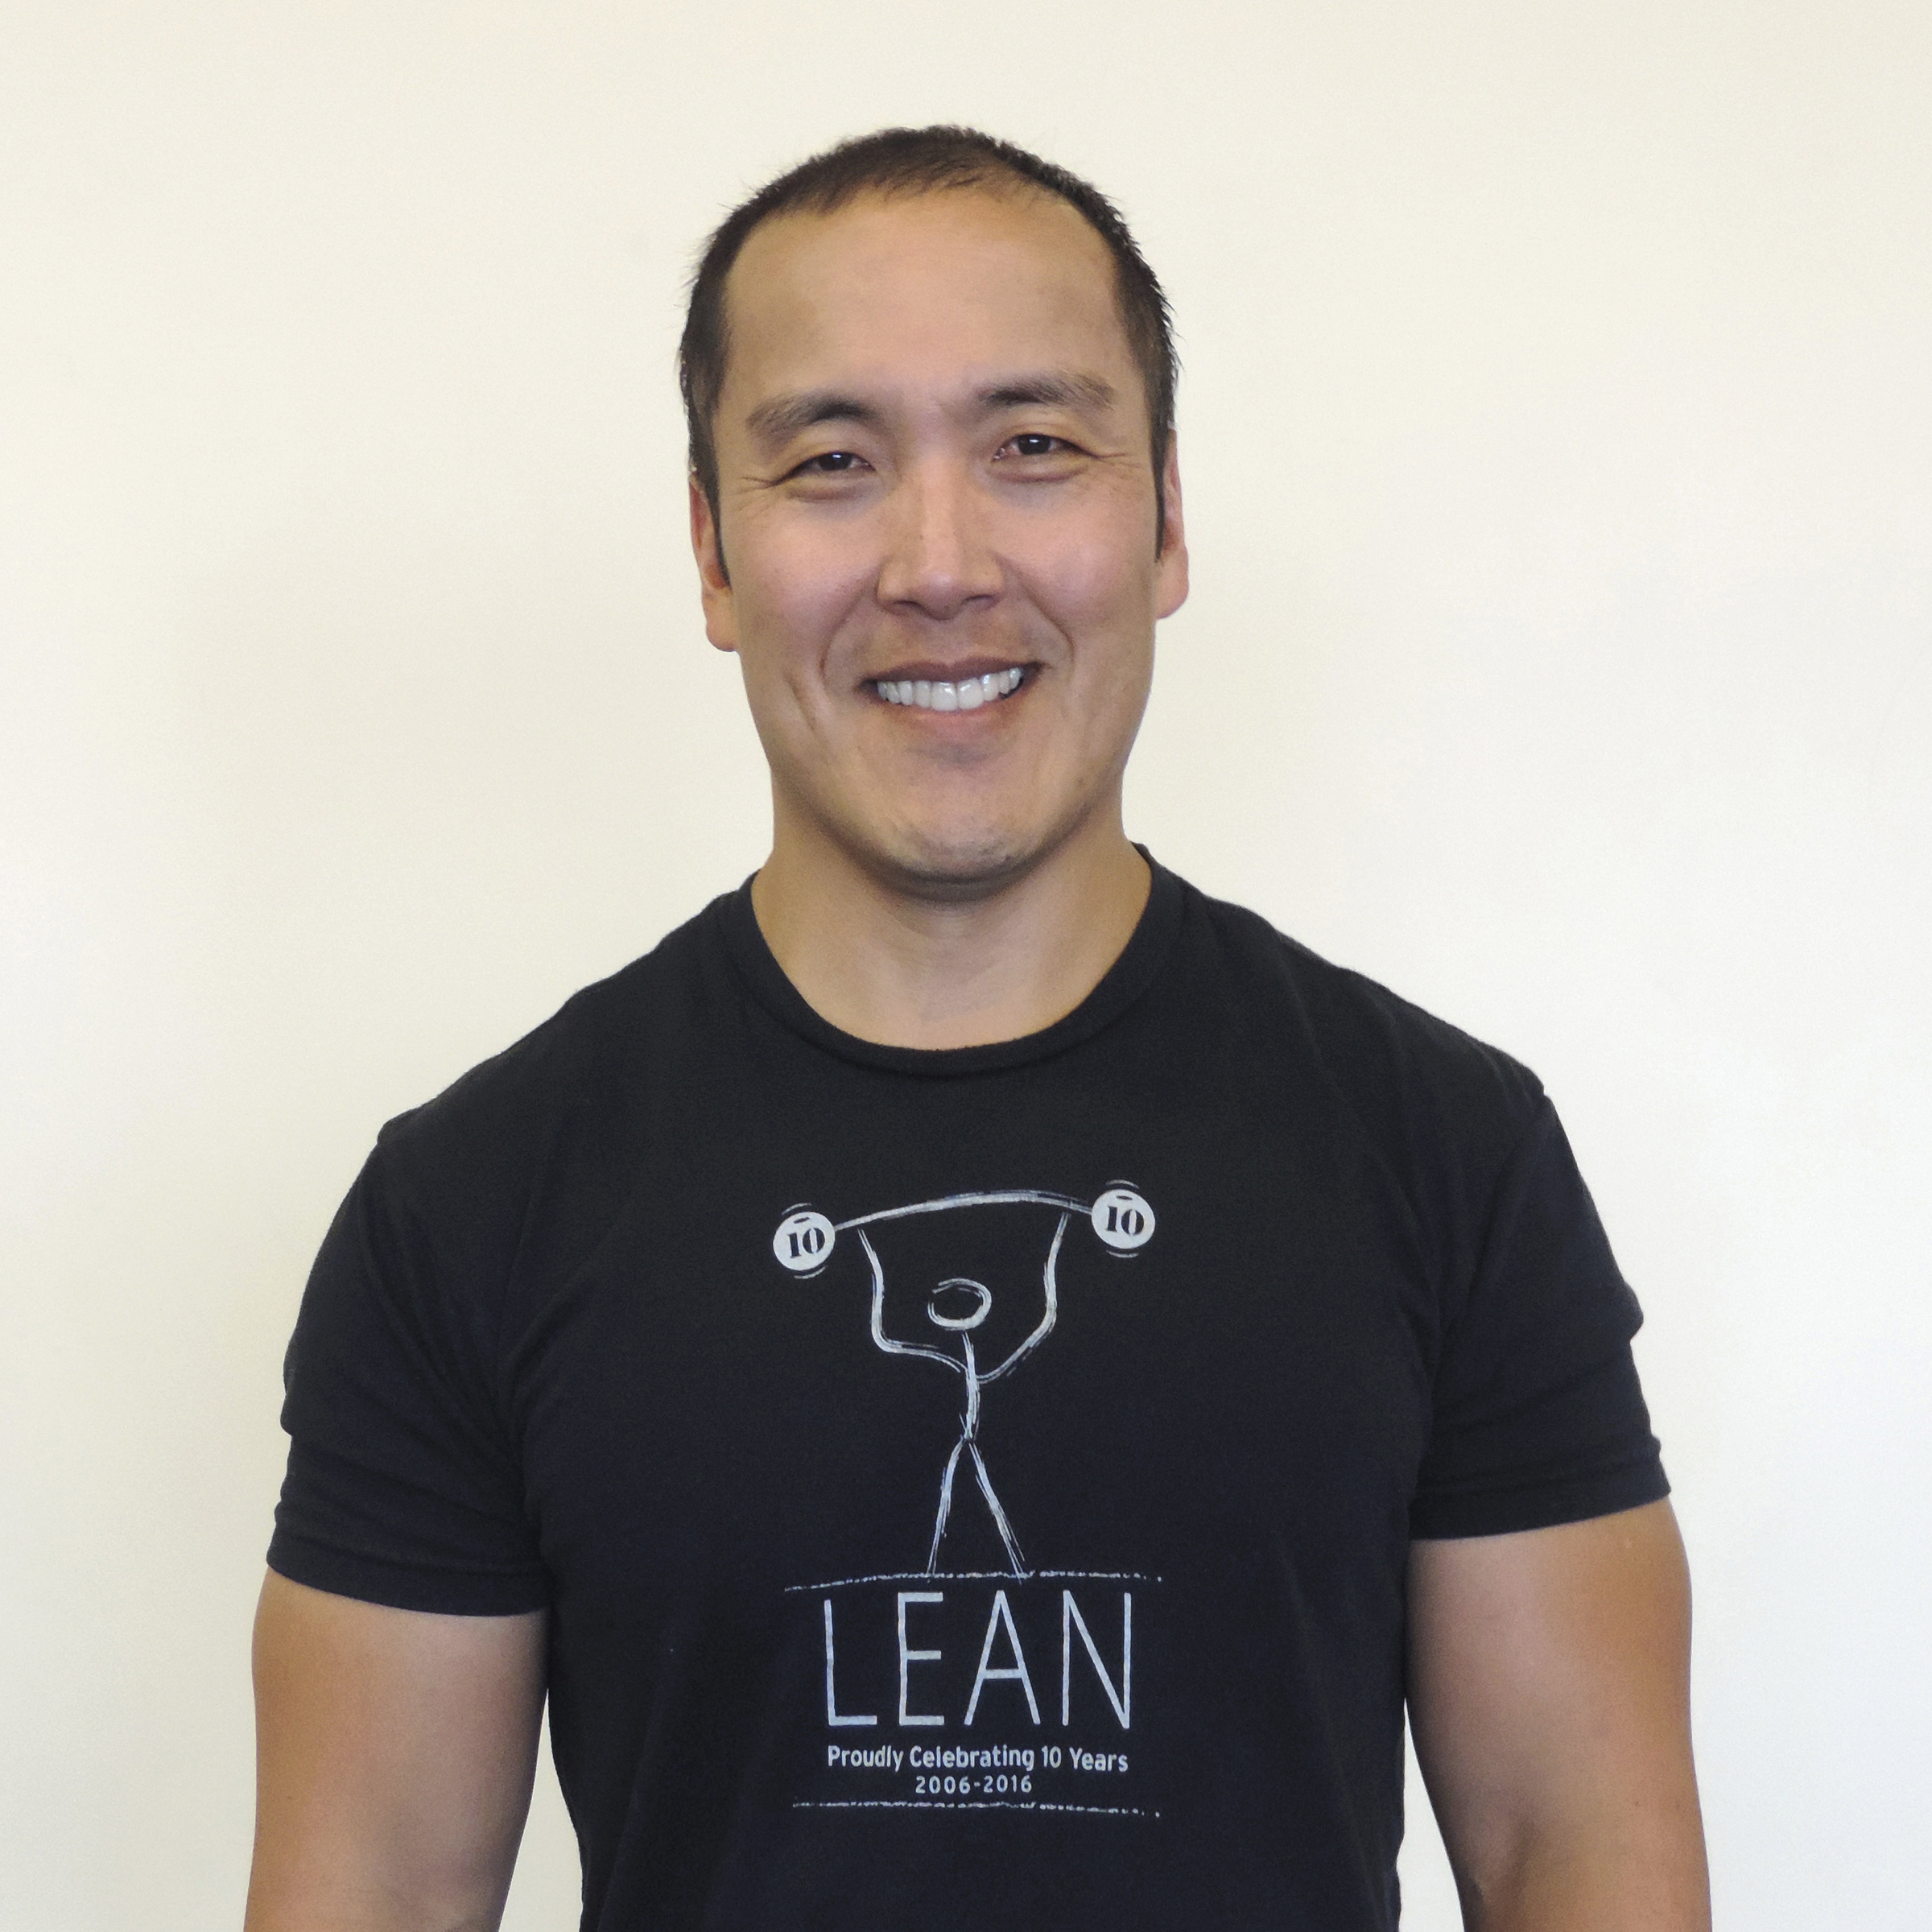 Min Kim, LEAN personal training gym in Nashville